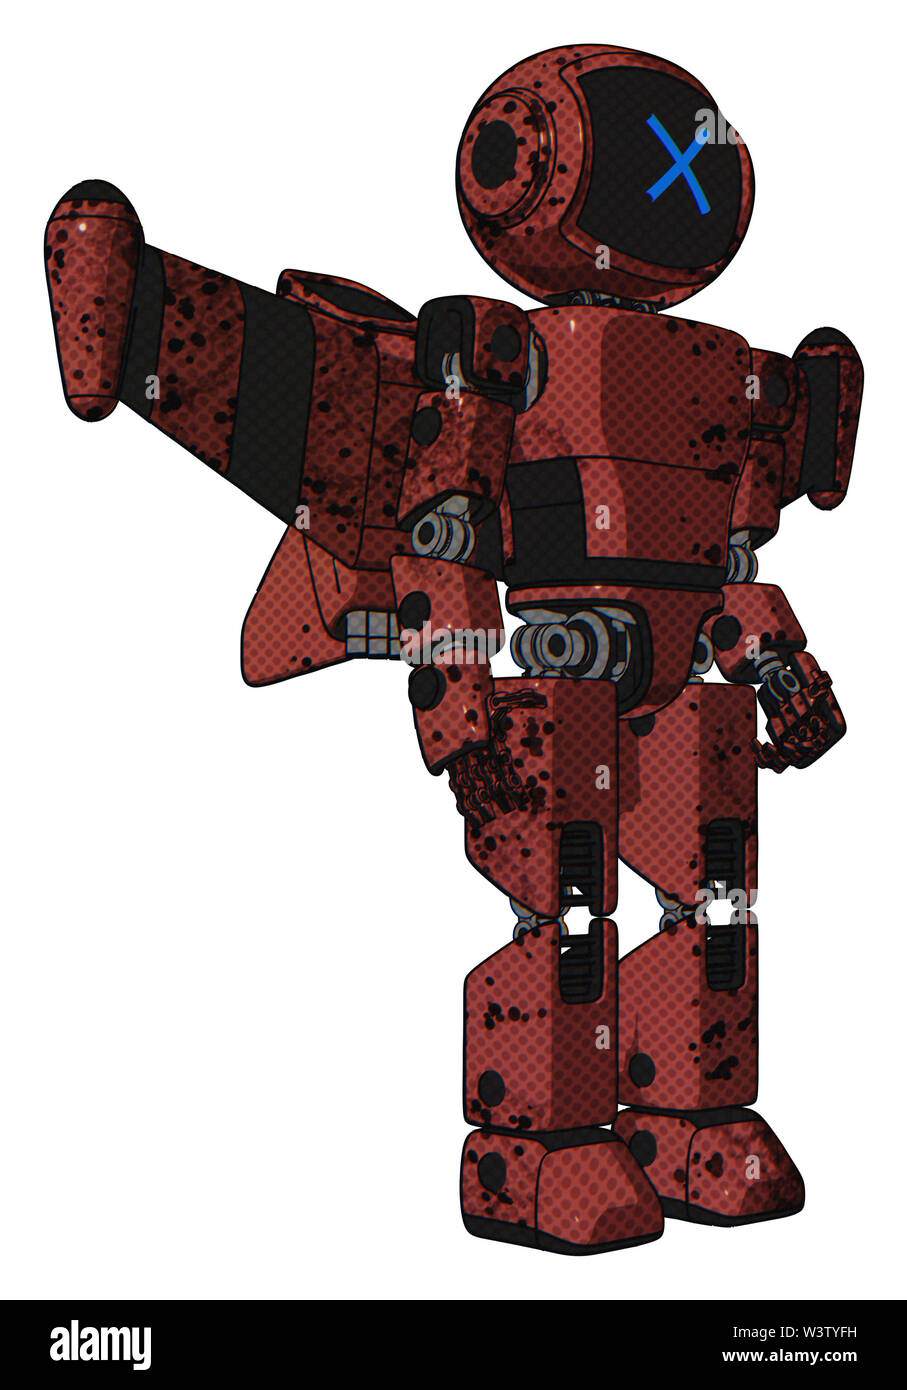 Bot containing elements: digital display head, x face, light chest exoshielding, prototype exoplate chest, stellar jet wing rocket pack, prototype exo - Stock Image